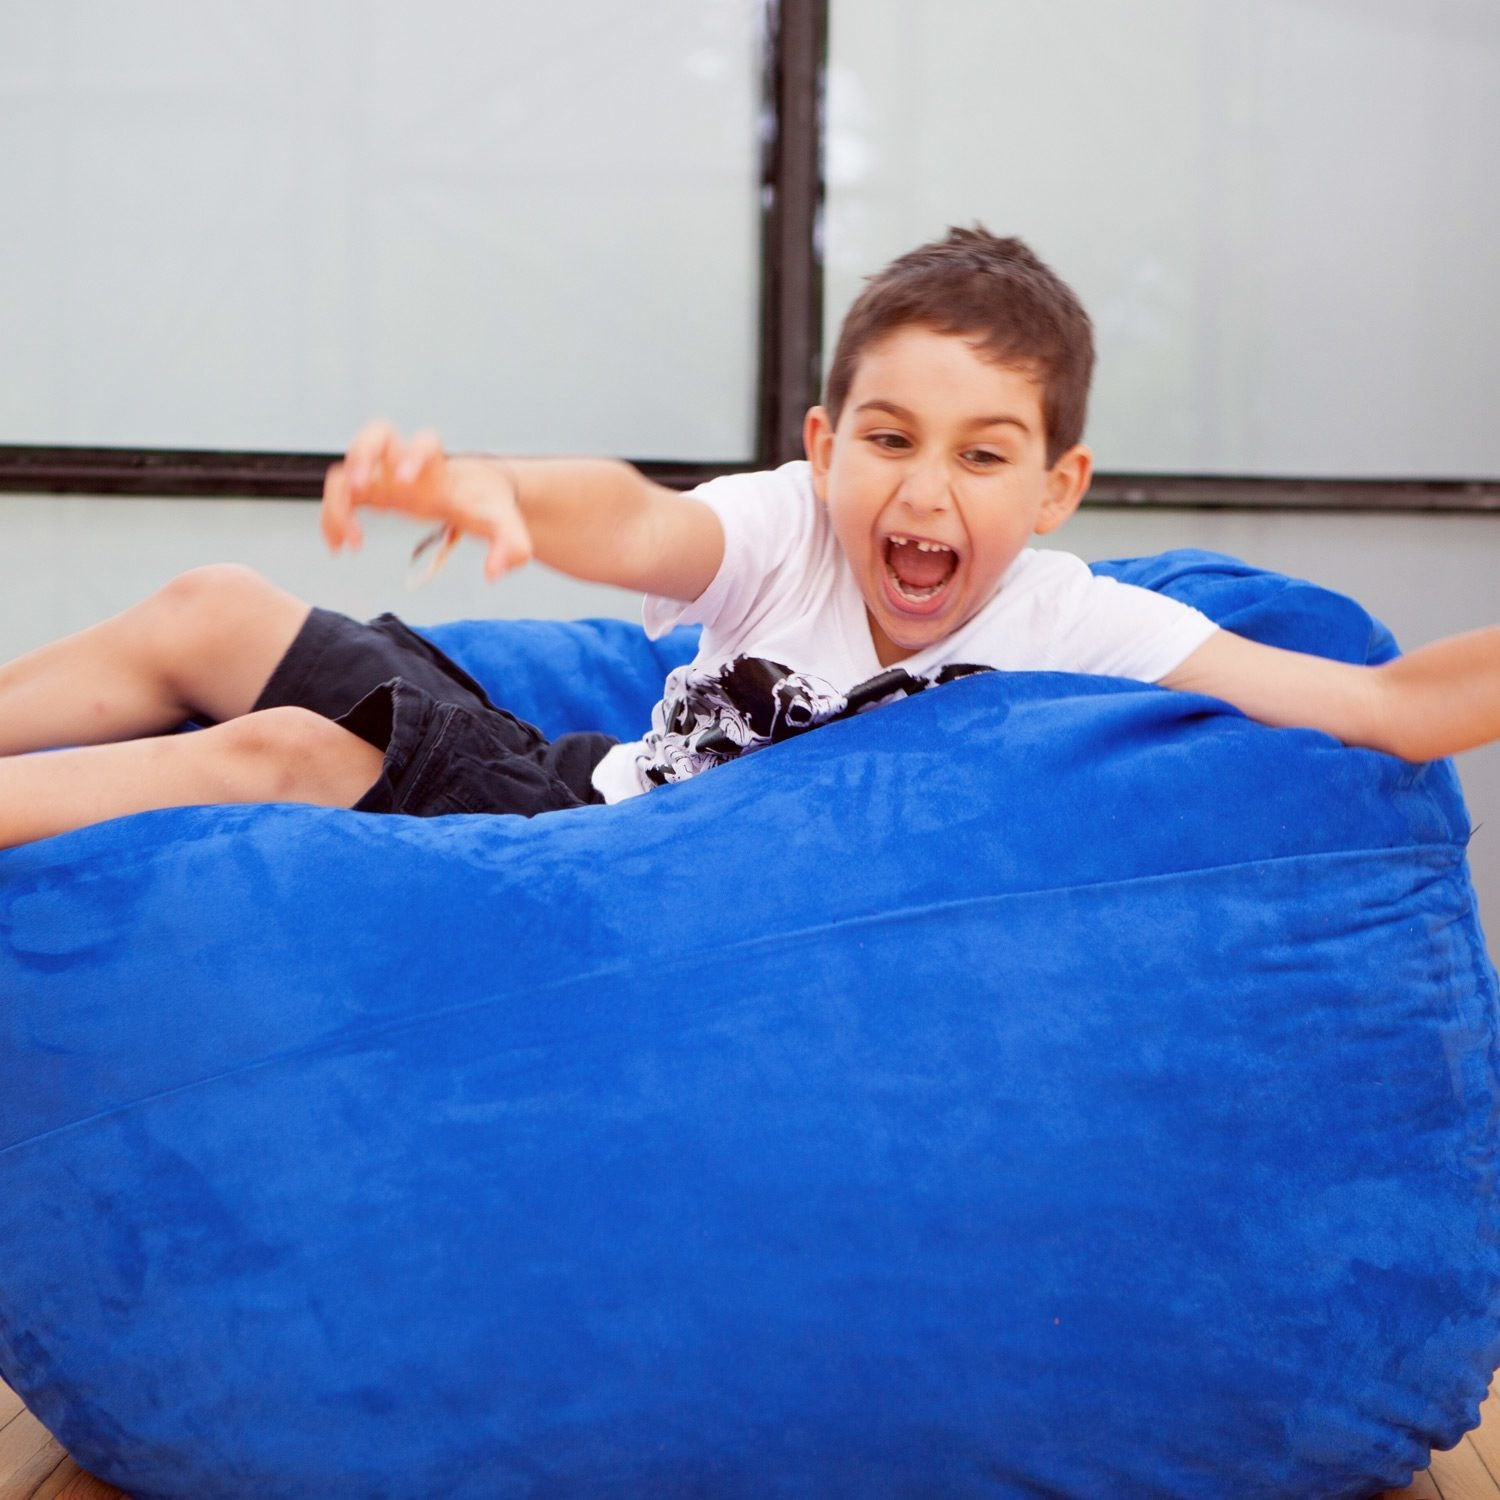 Best Kids Bean Bag Around - The 4 Foot Jaxx Cocoon Bean Bag